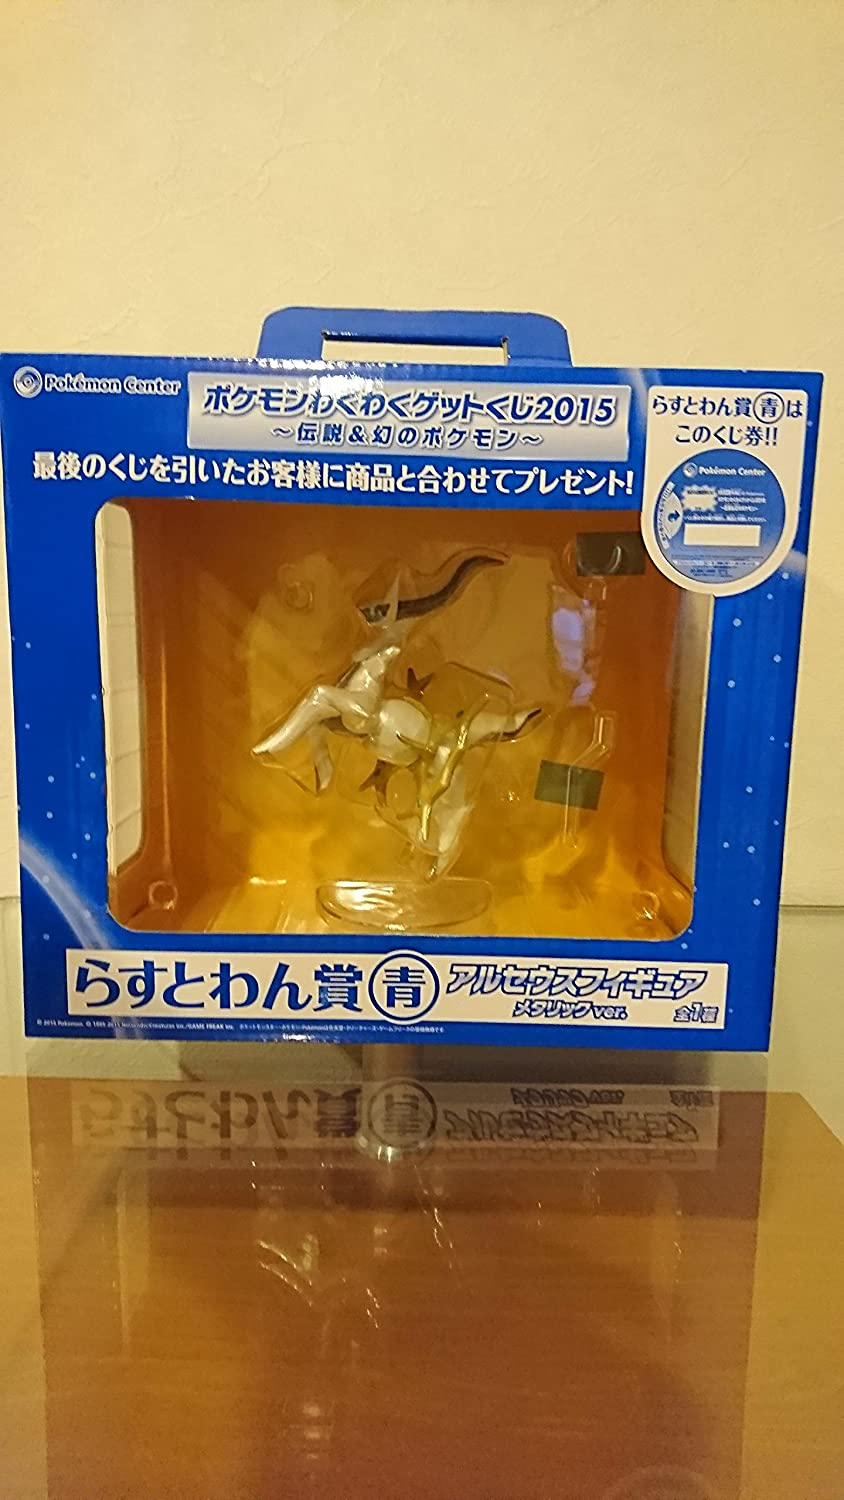 Pokemon exciting get lottery 2015` legend  phantom of Pokemon - Last Wan Award (azul) Arceus figure metallic ver.